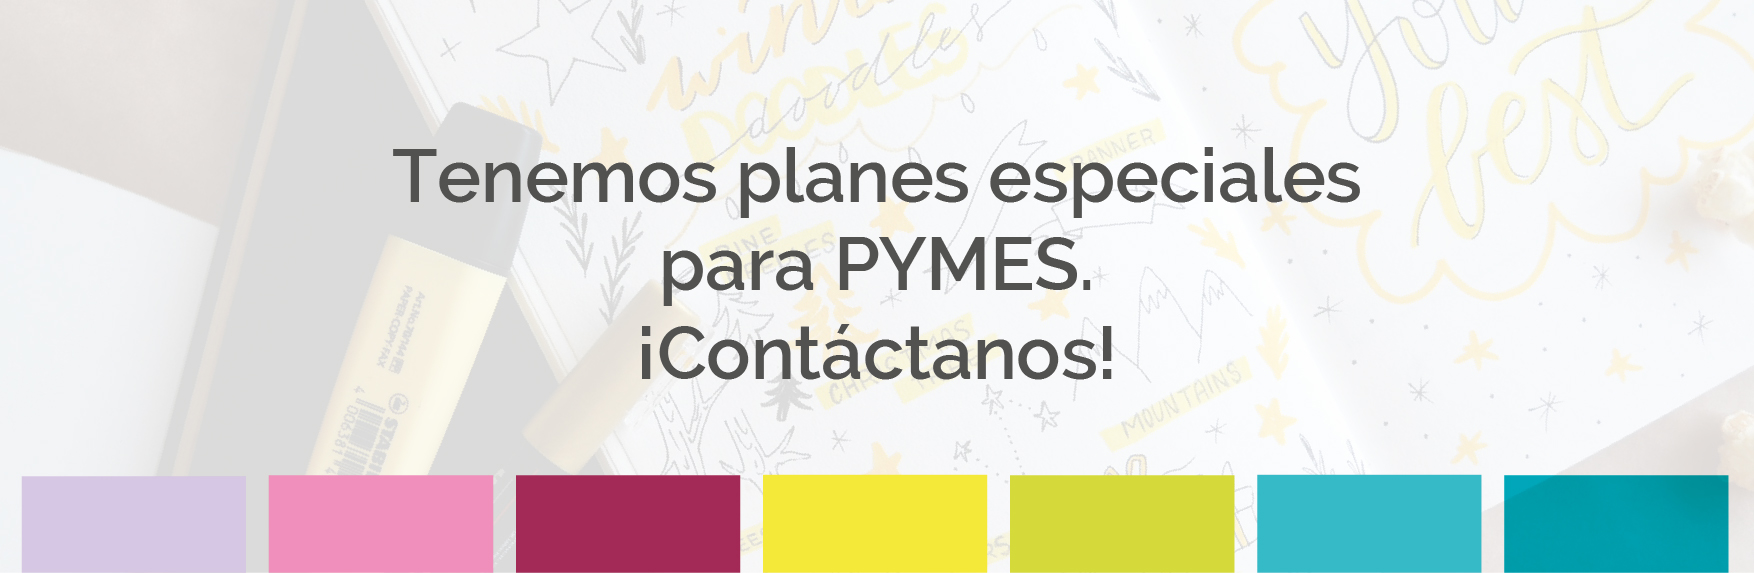 banner pymes vinculo